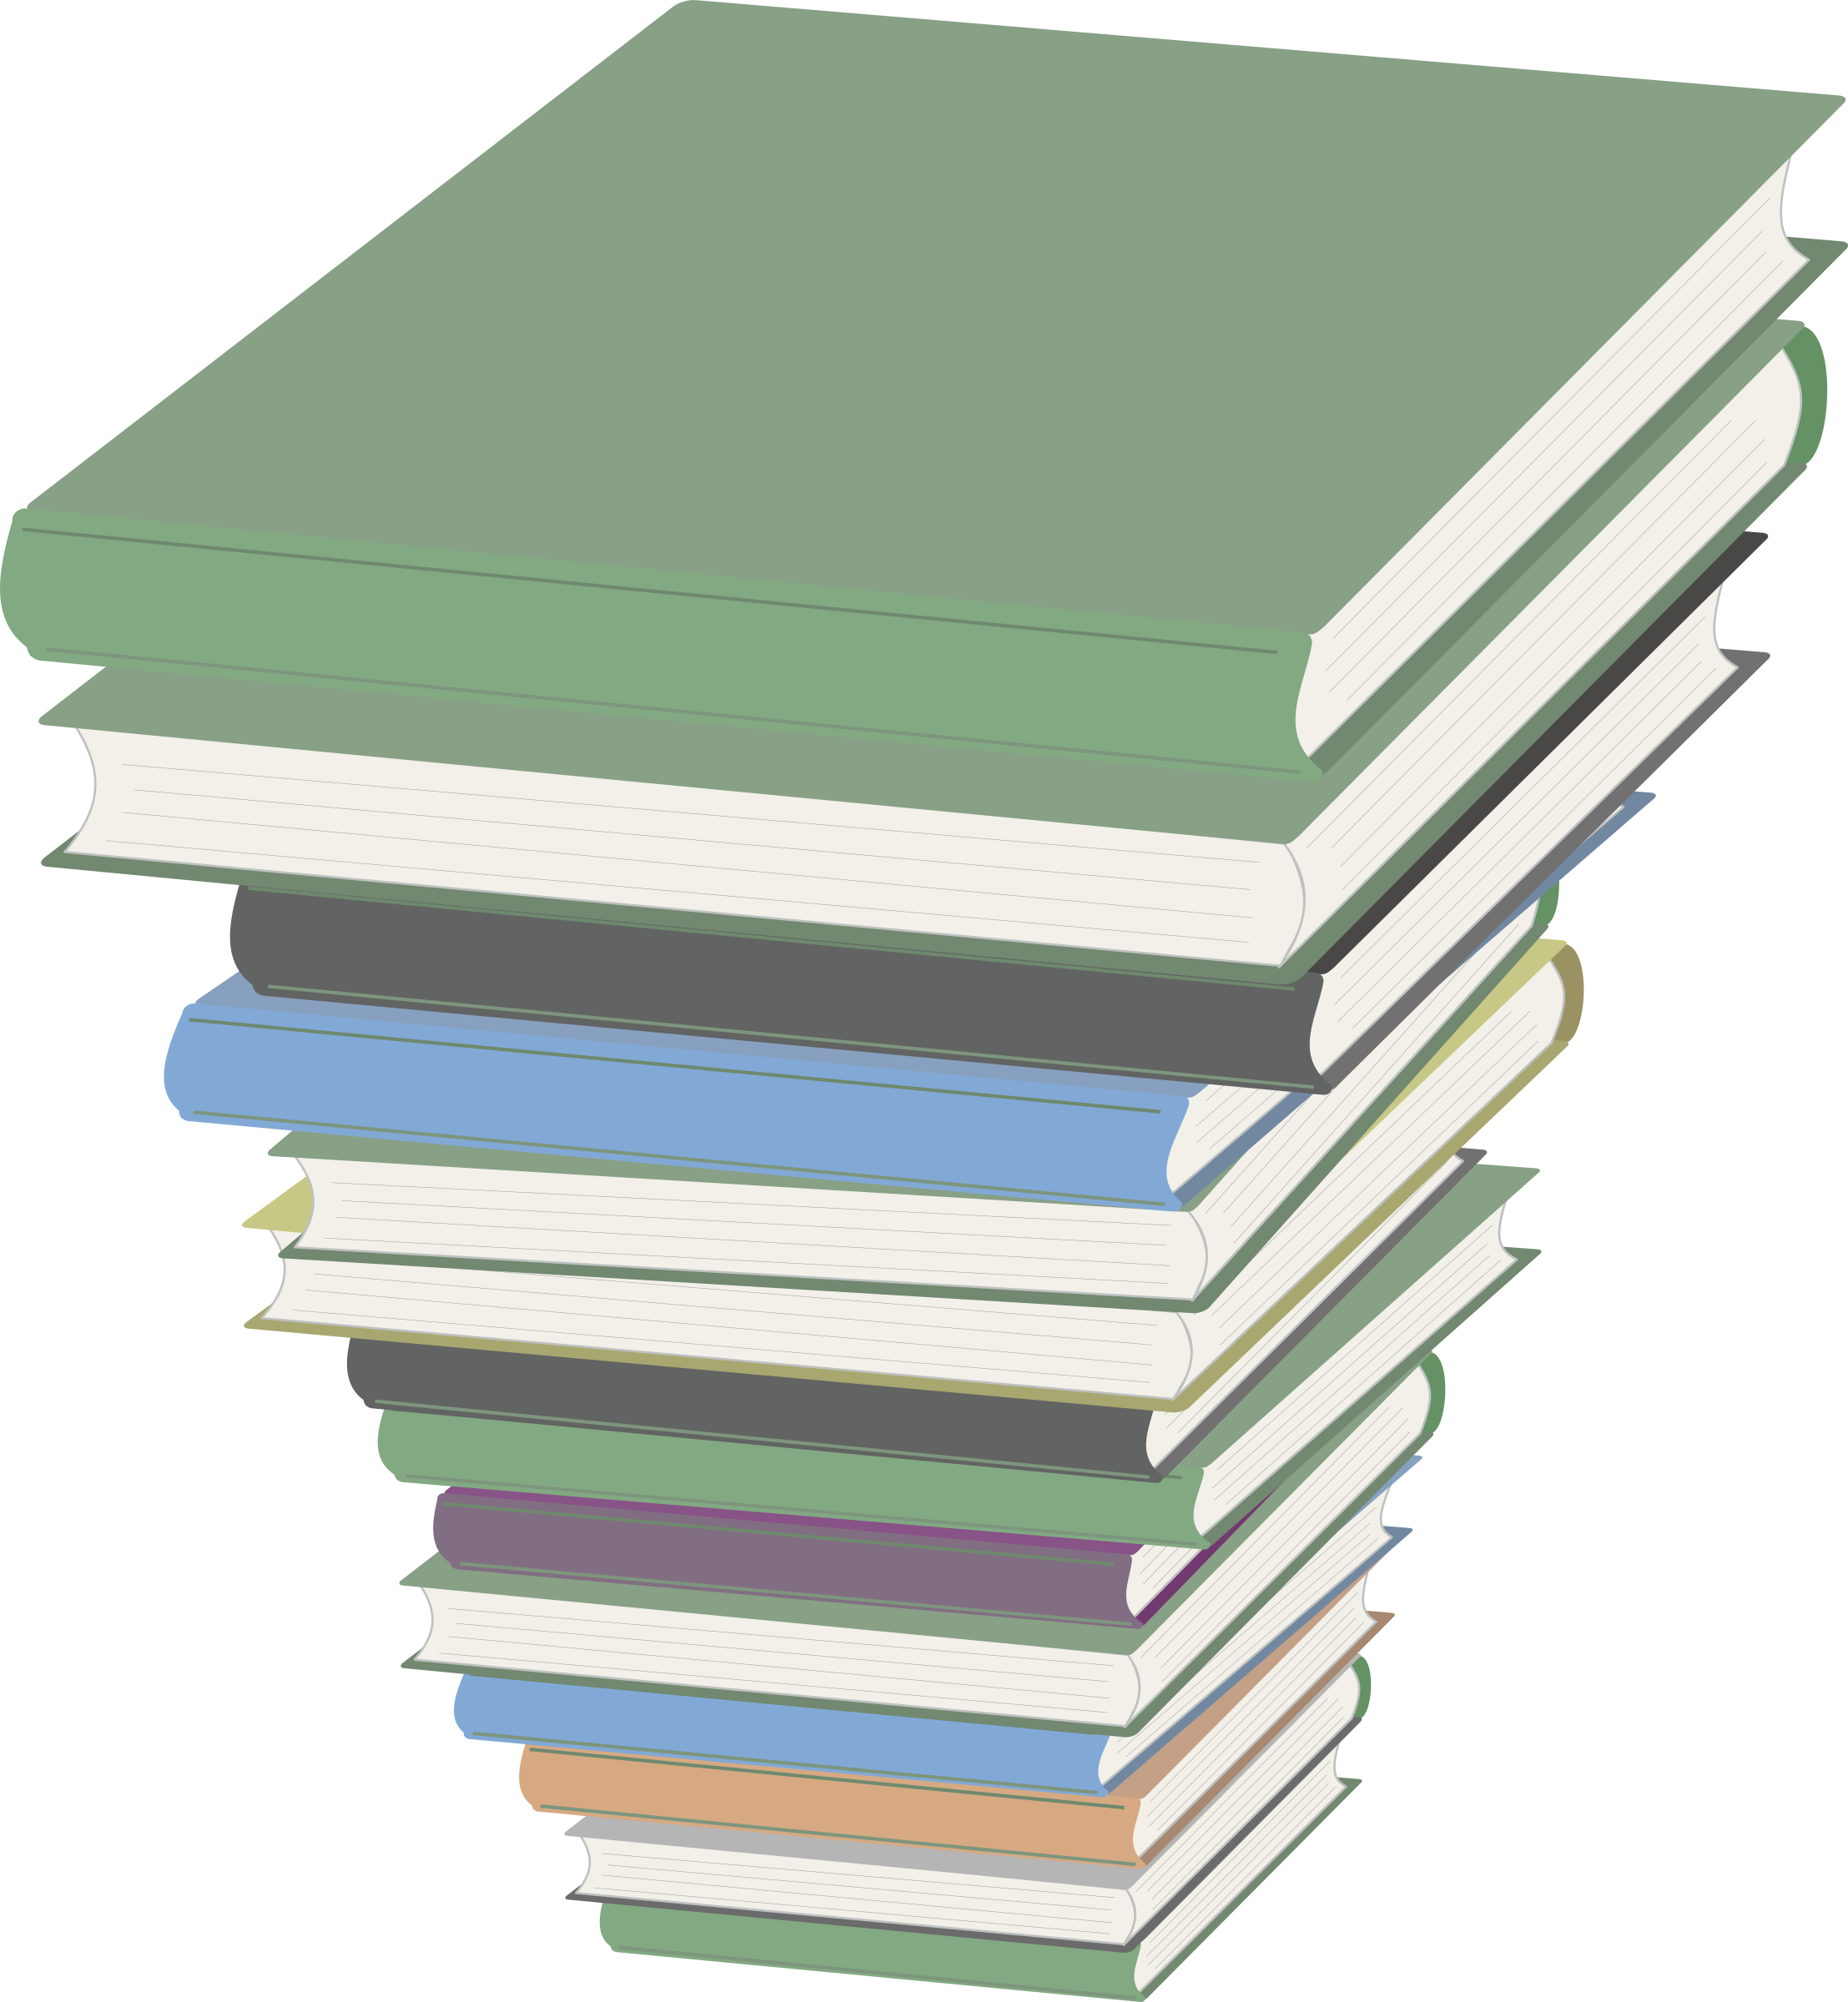 Book clipart piled Pile Books Pile of Clipart